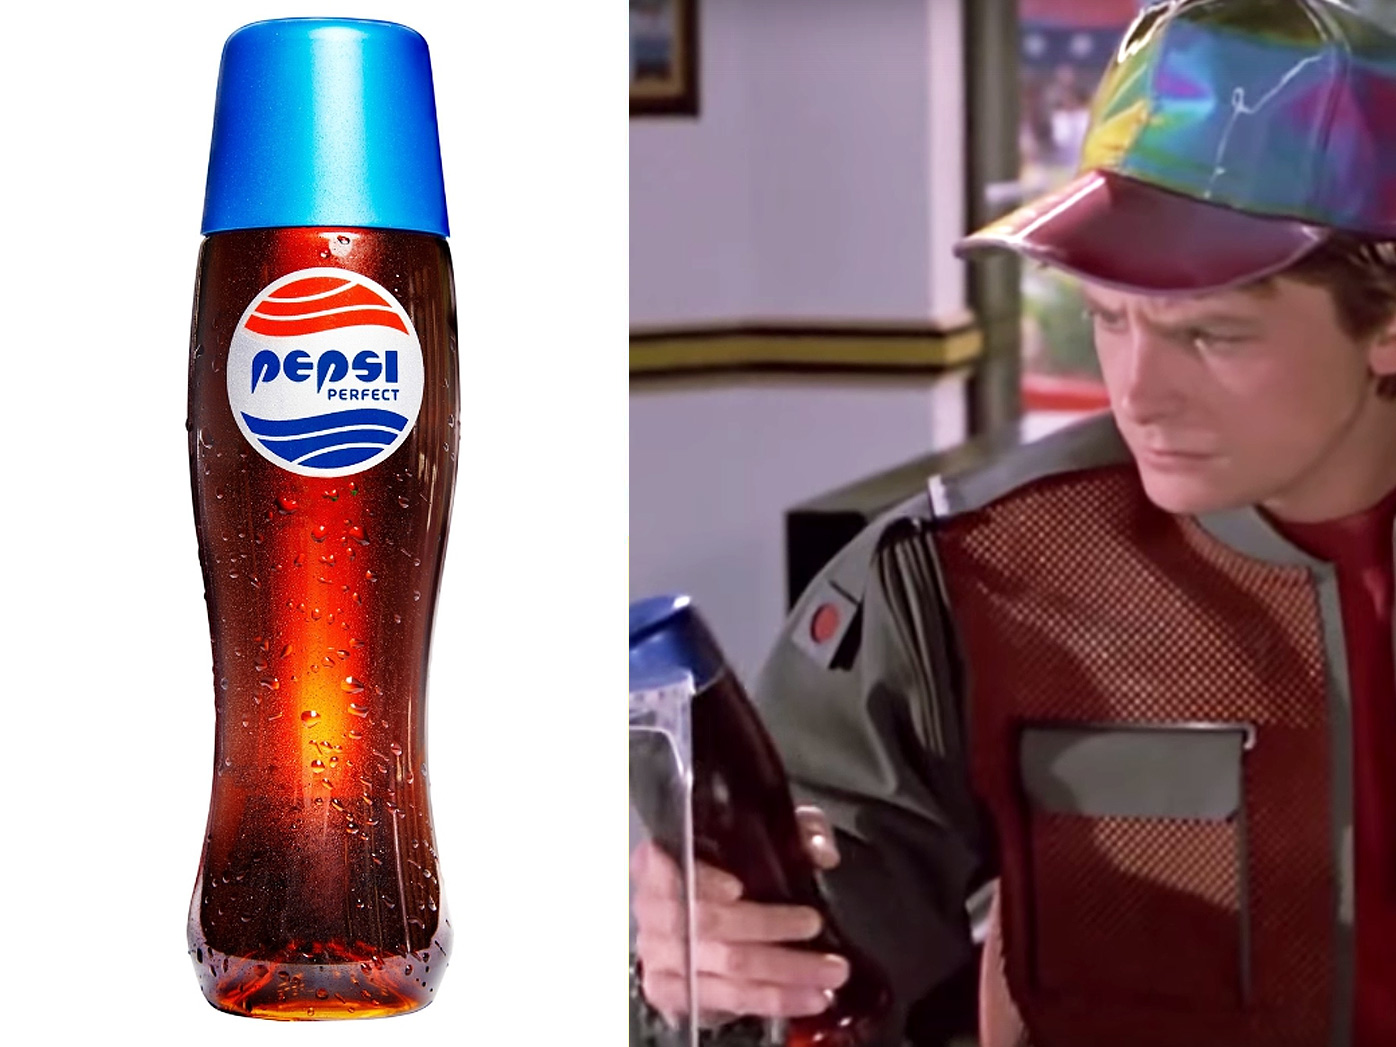 Pepsi Perfect bottle, Michael J Fox as Marty McFly in Back to the Future II